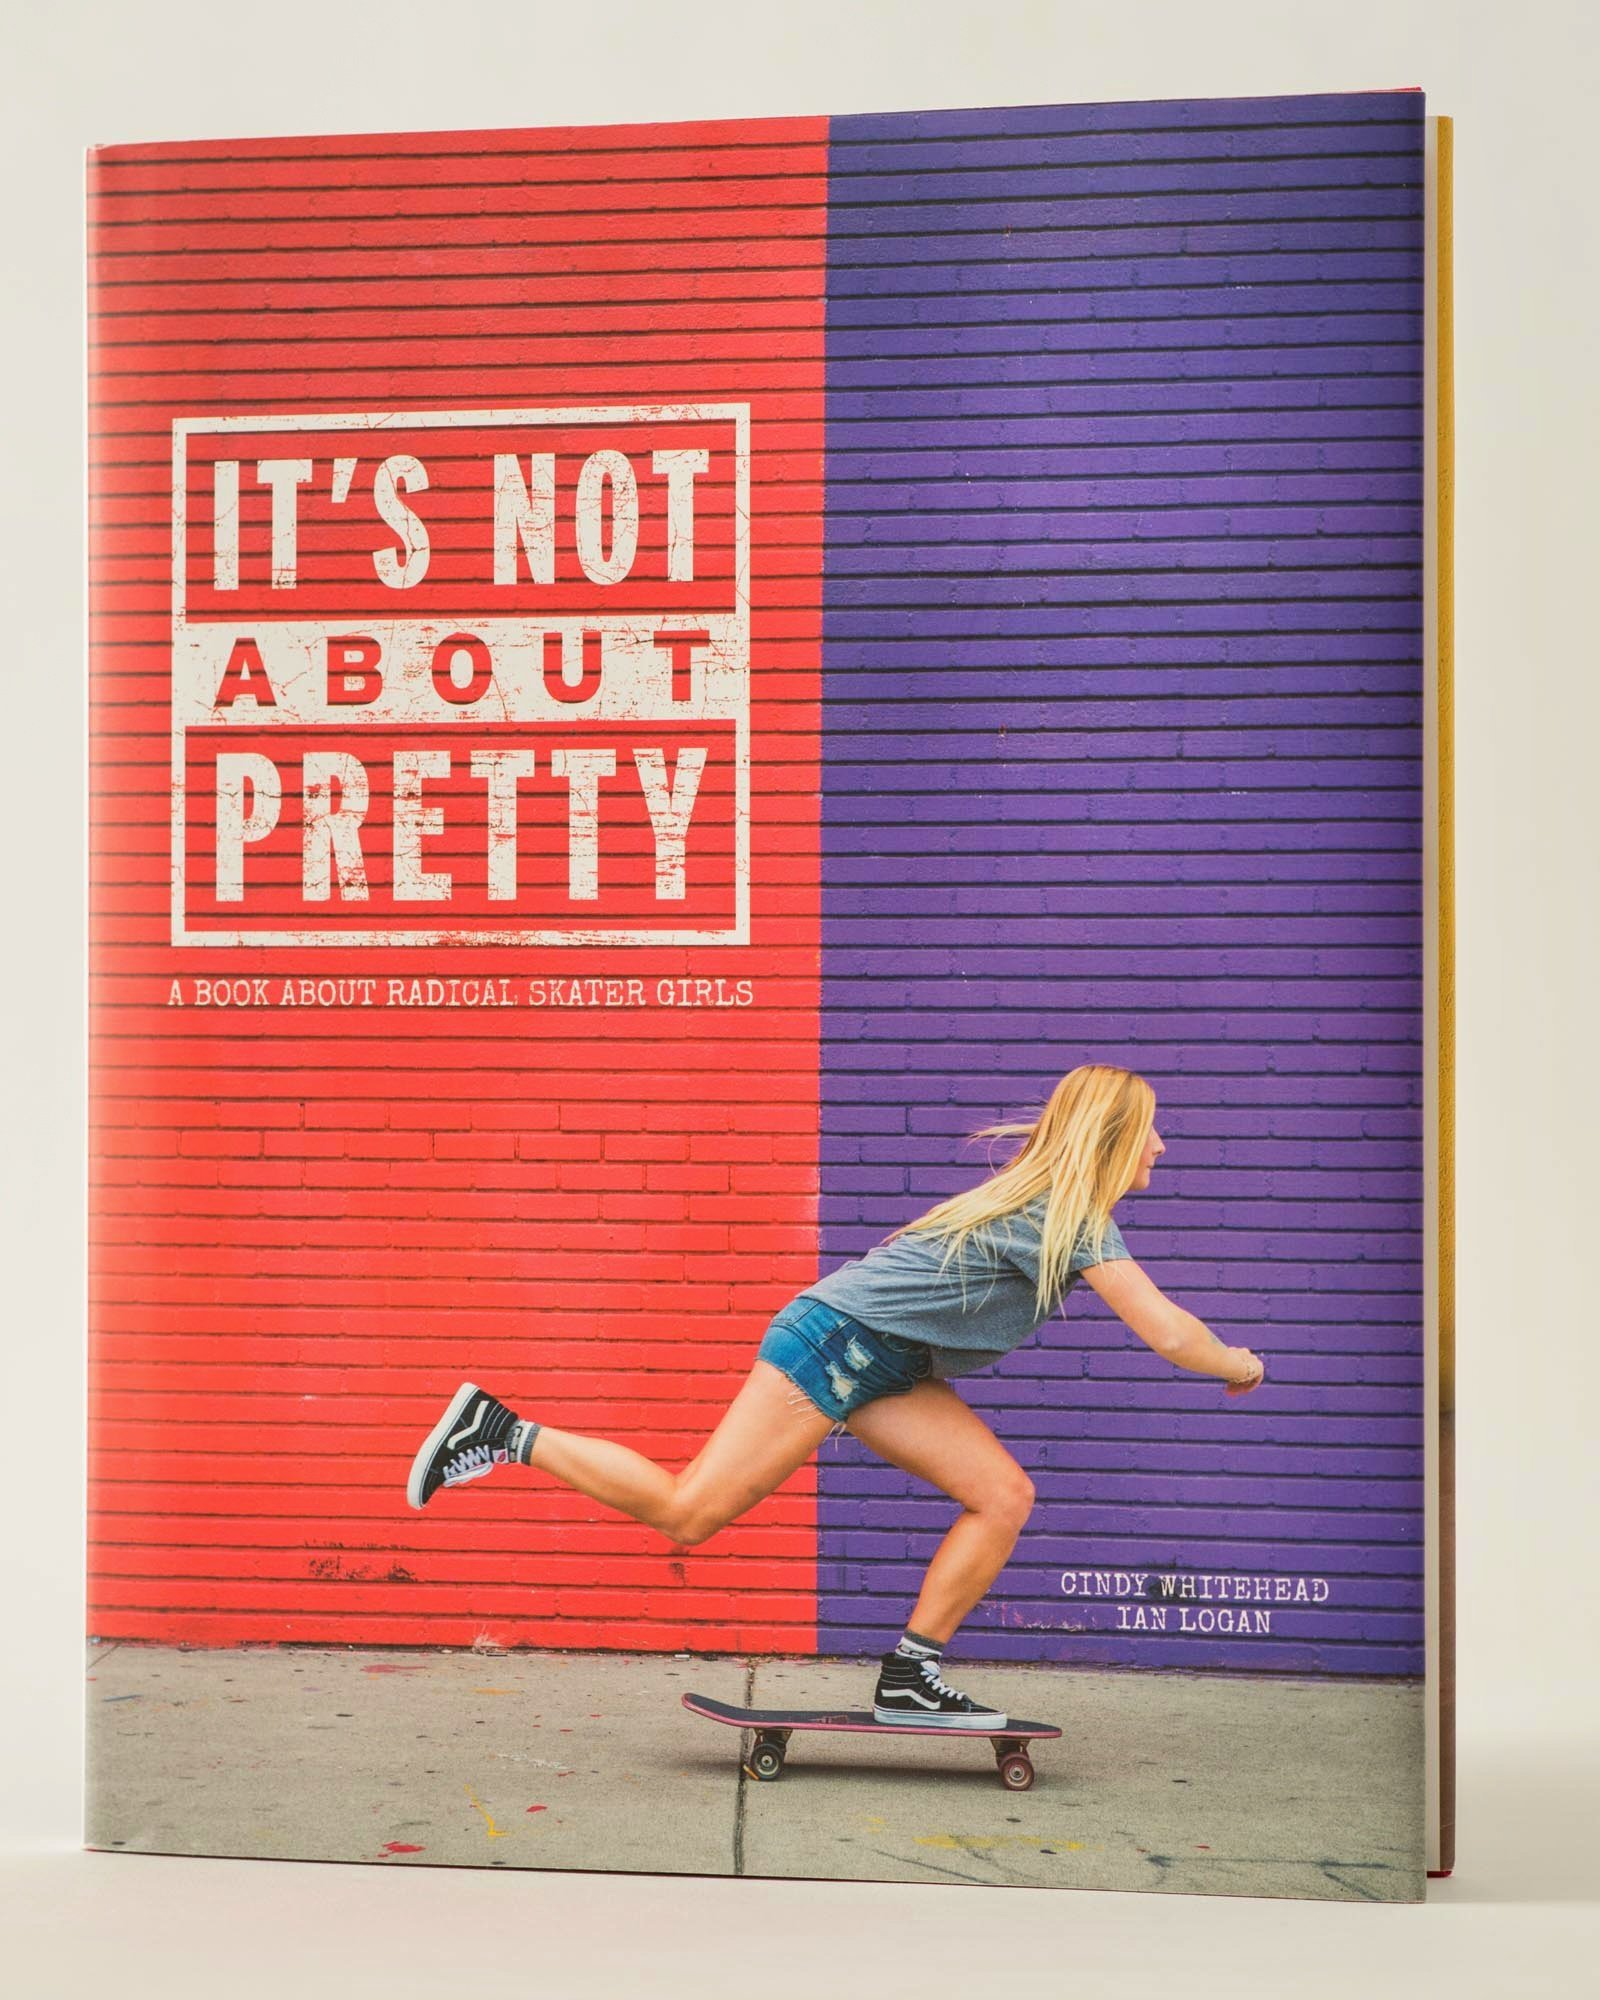 It's Not About Pretty: A Book About Radical Skater Girls